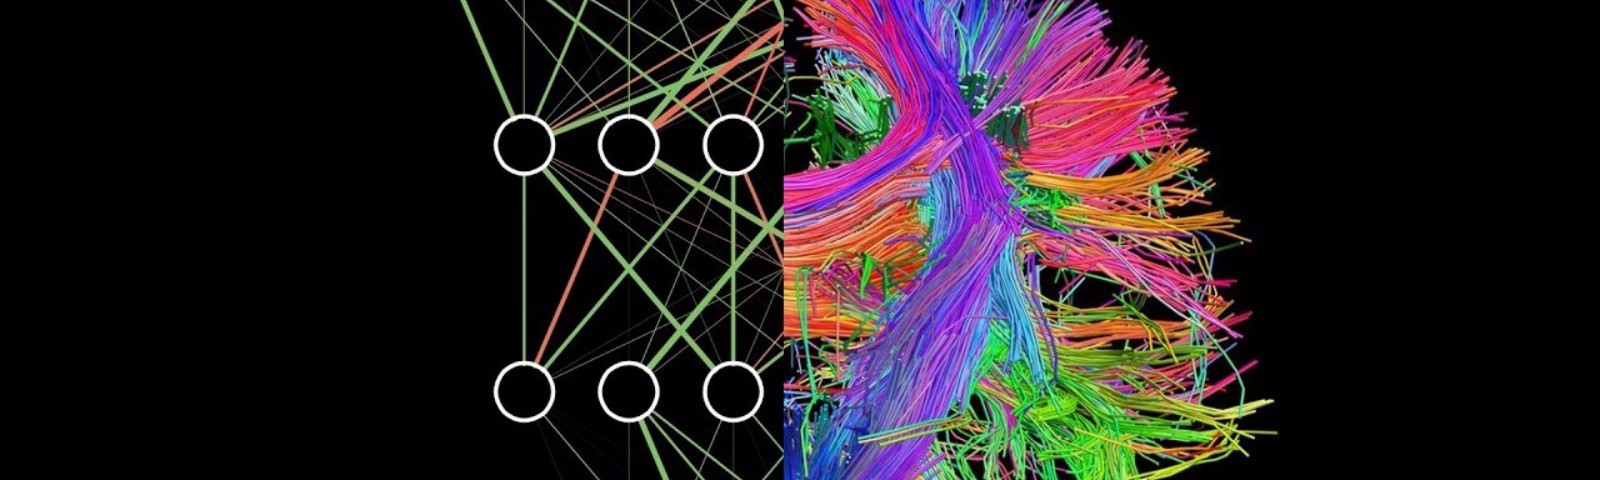 A mixture of an Artificial Neural Network and the Brain Connectome